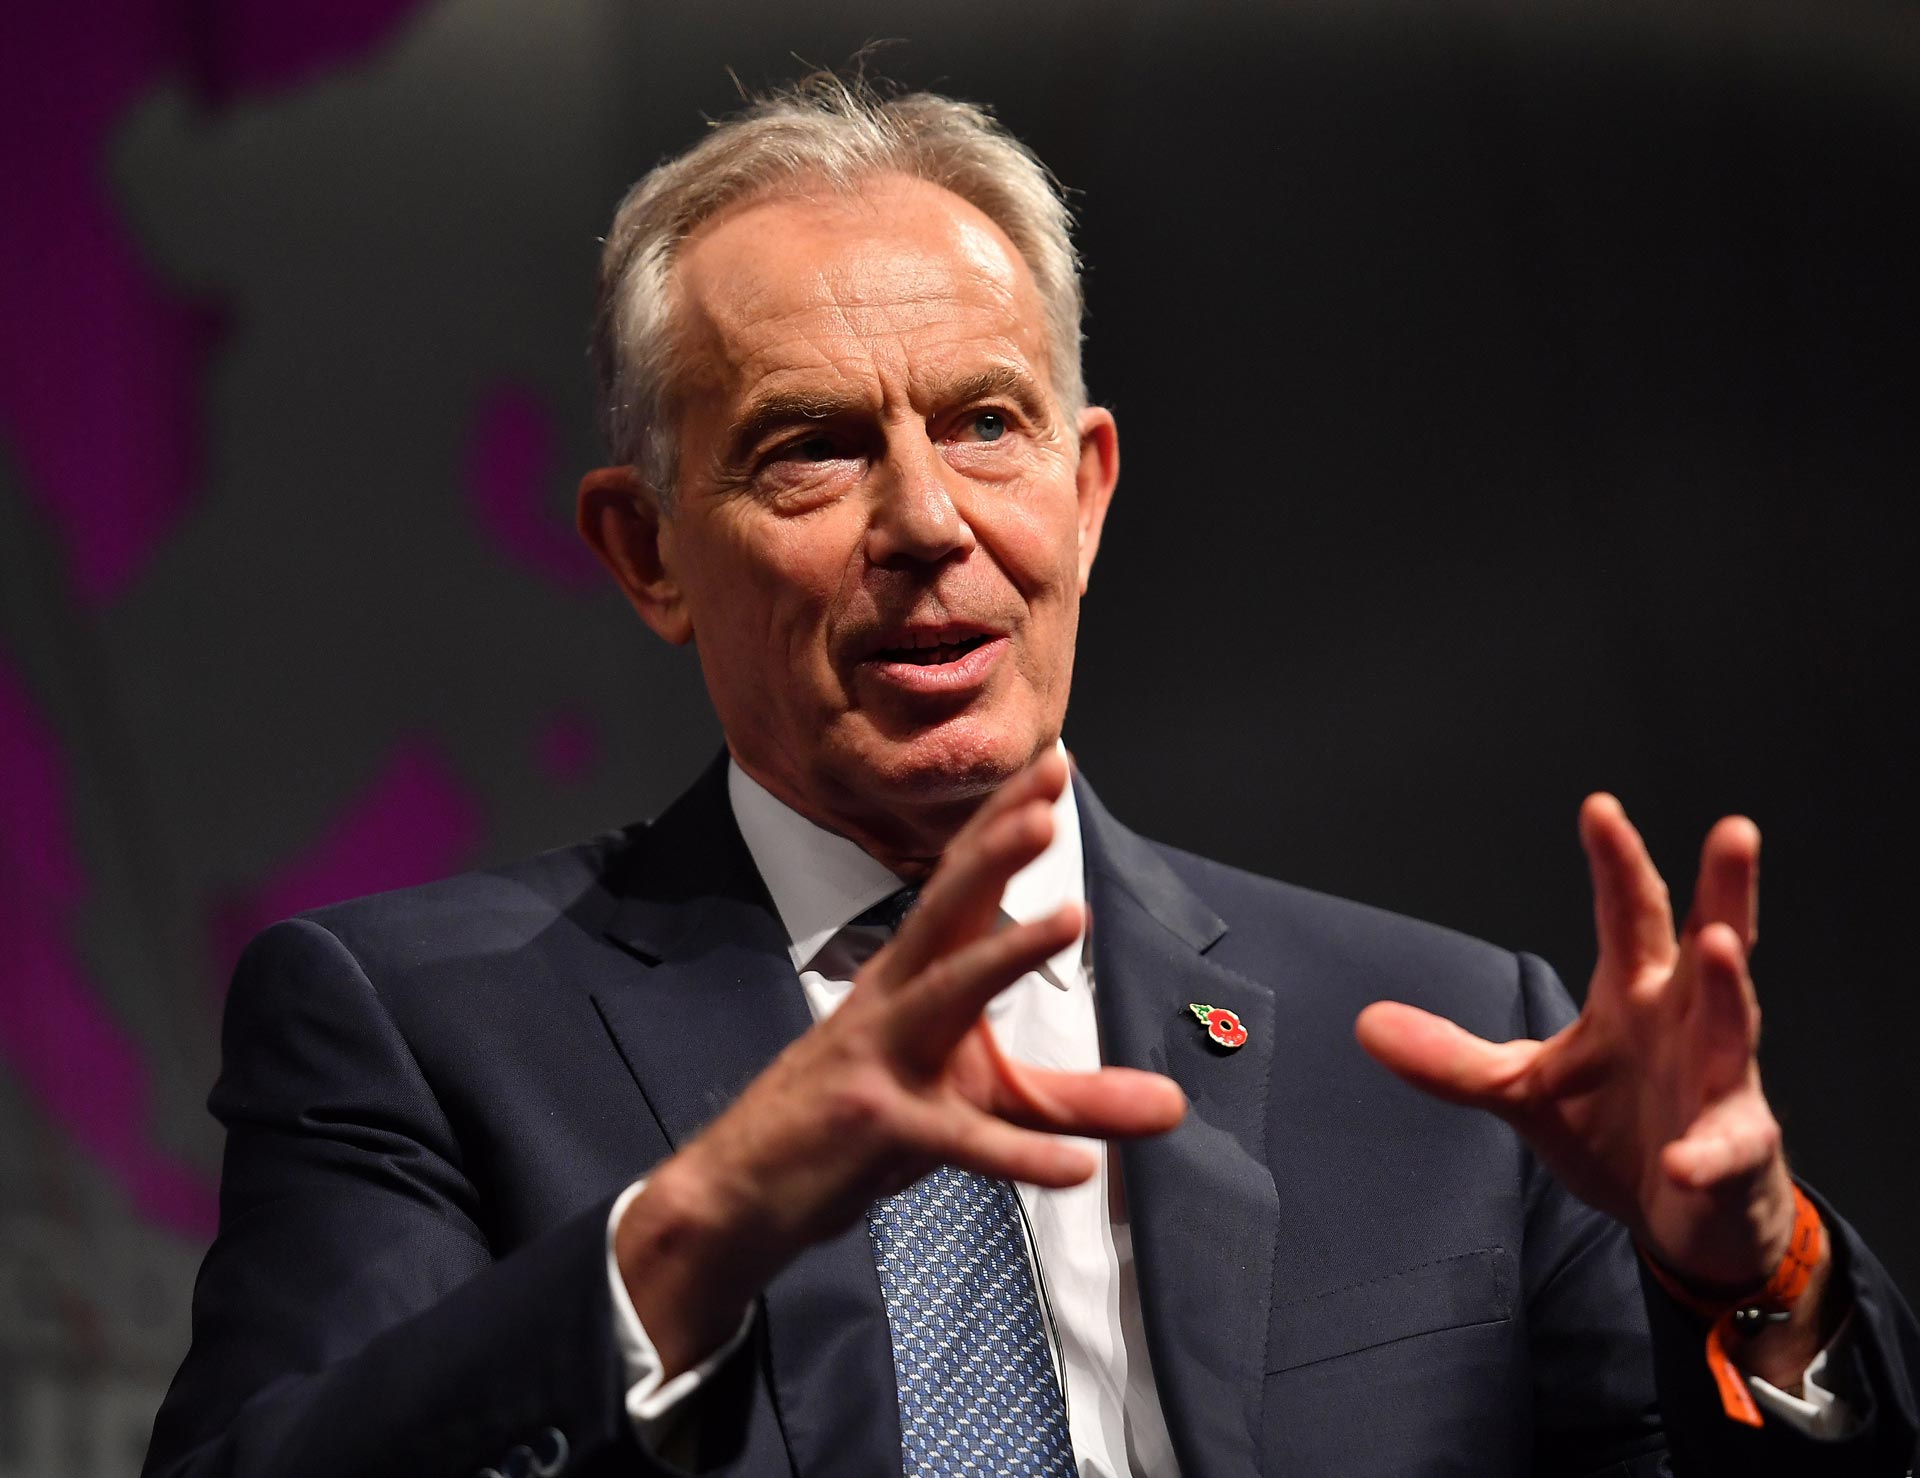 Tony Blair: Technology is vital to defeating populism - Verdict